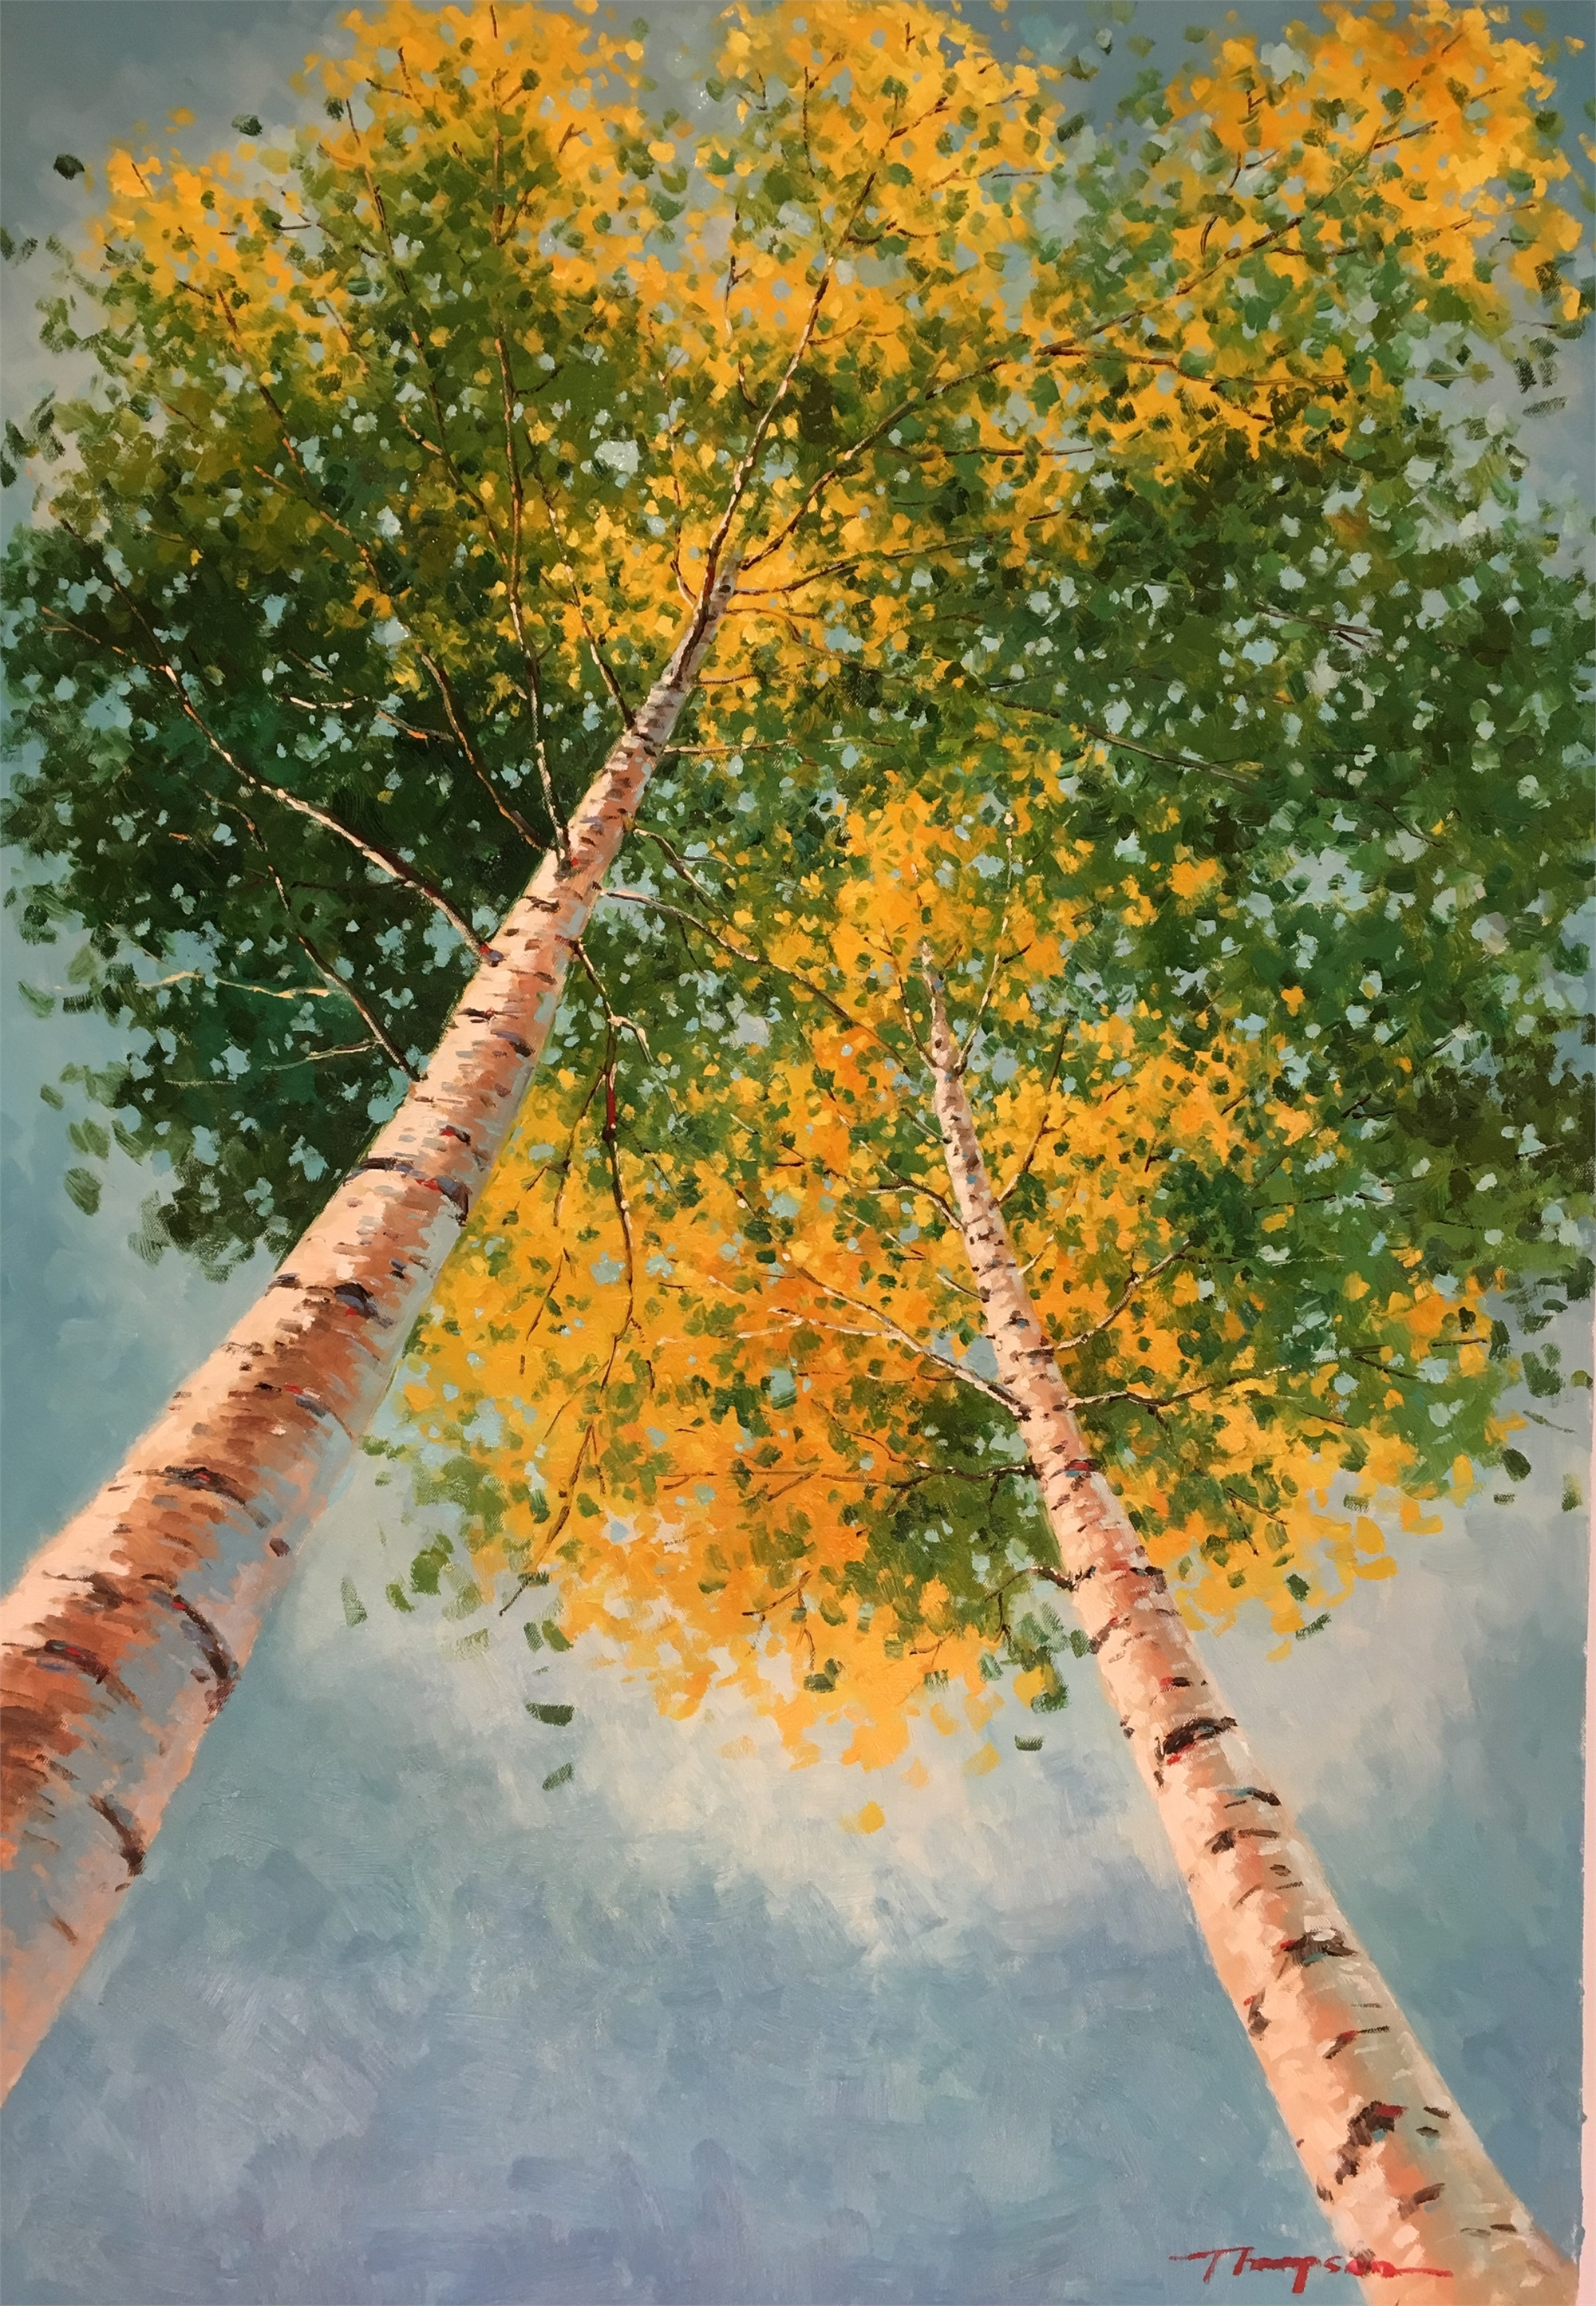 YELLOW ASPENS FROM BELOW by THOMPSON